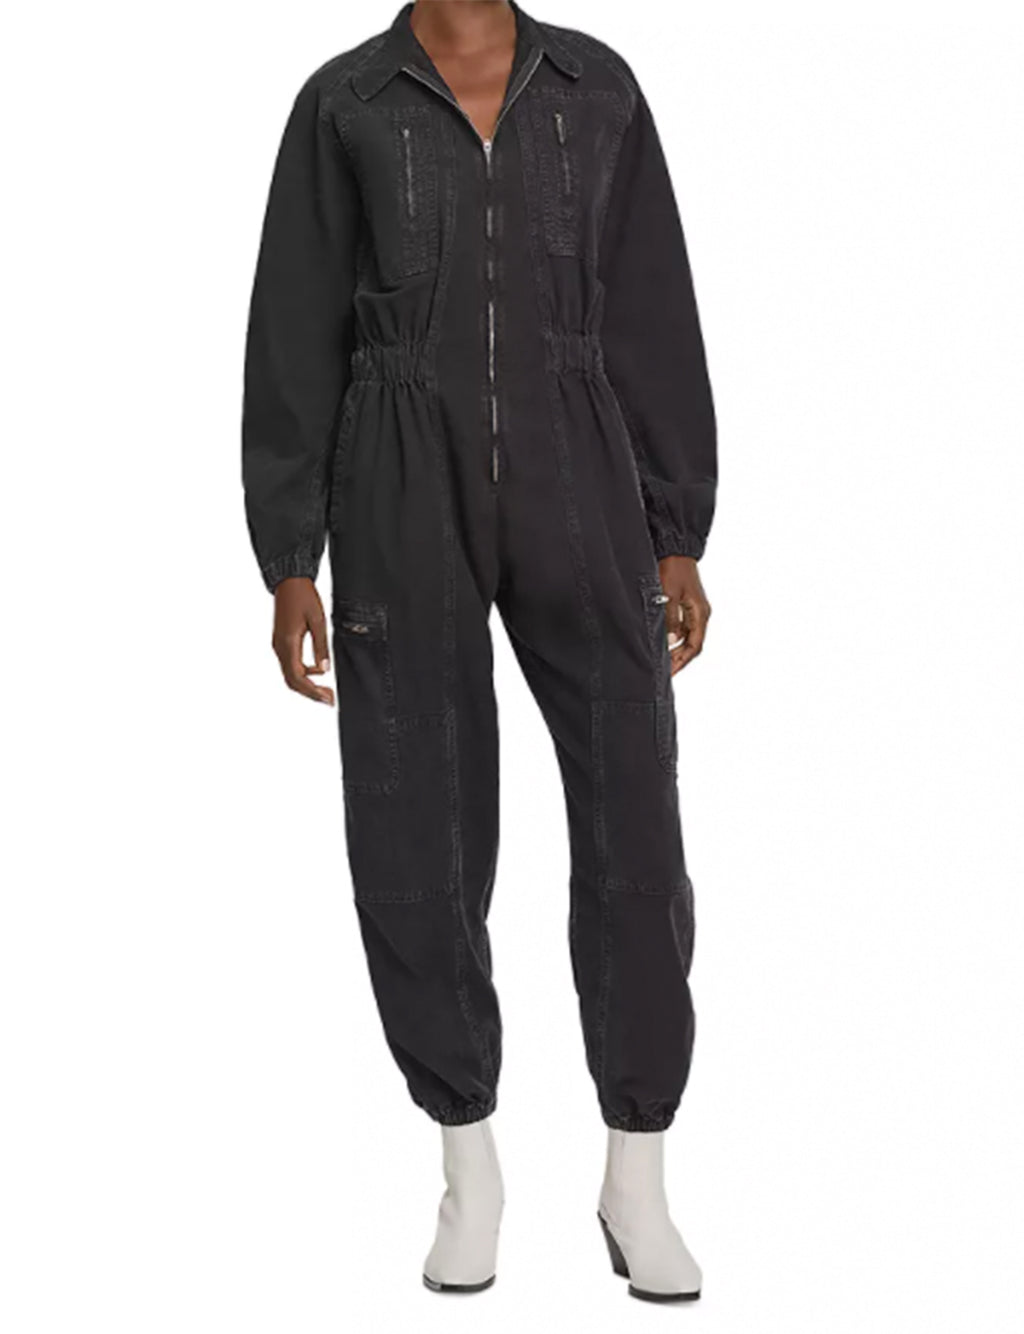 Marin Flight Suit in Washed Black